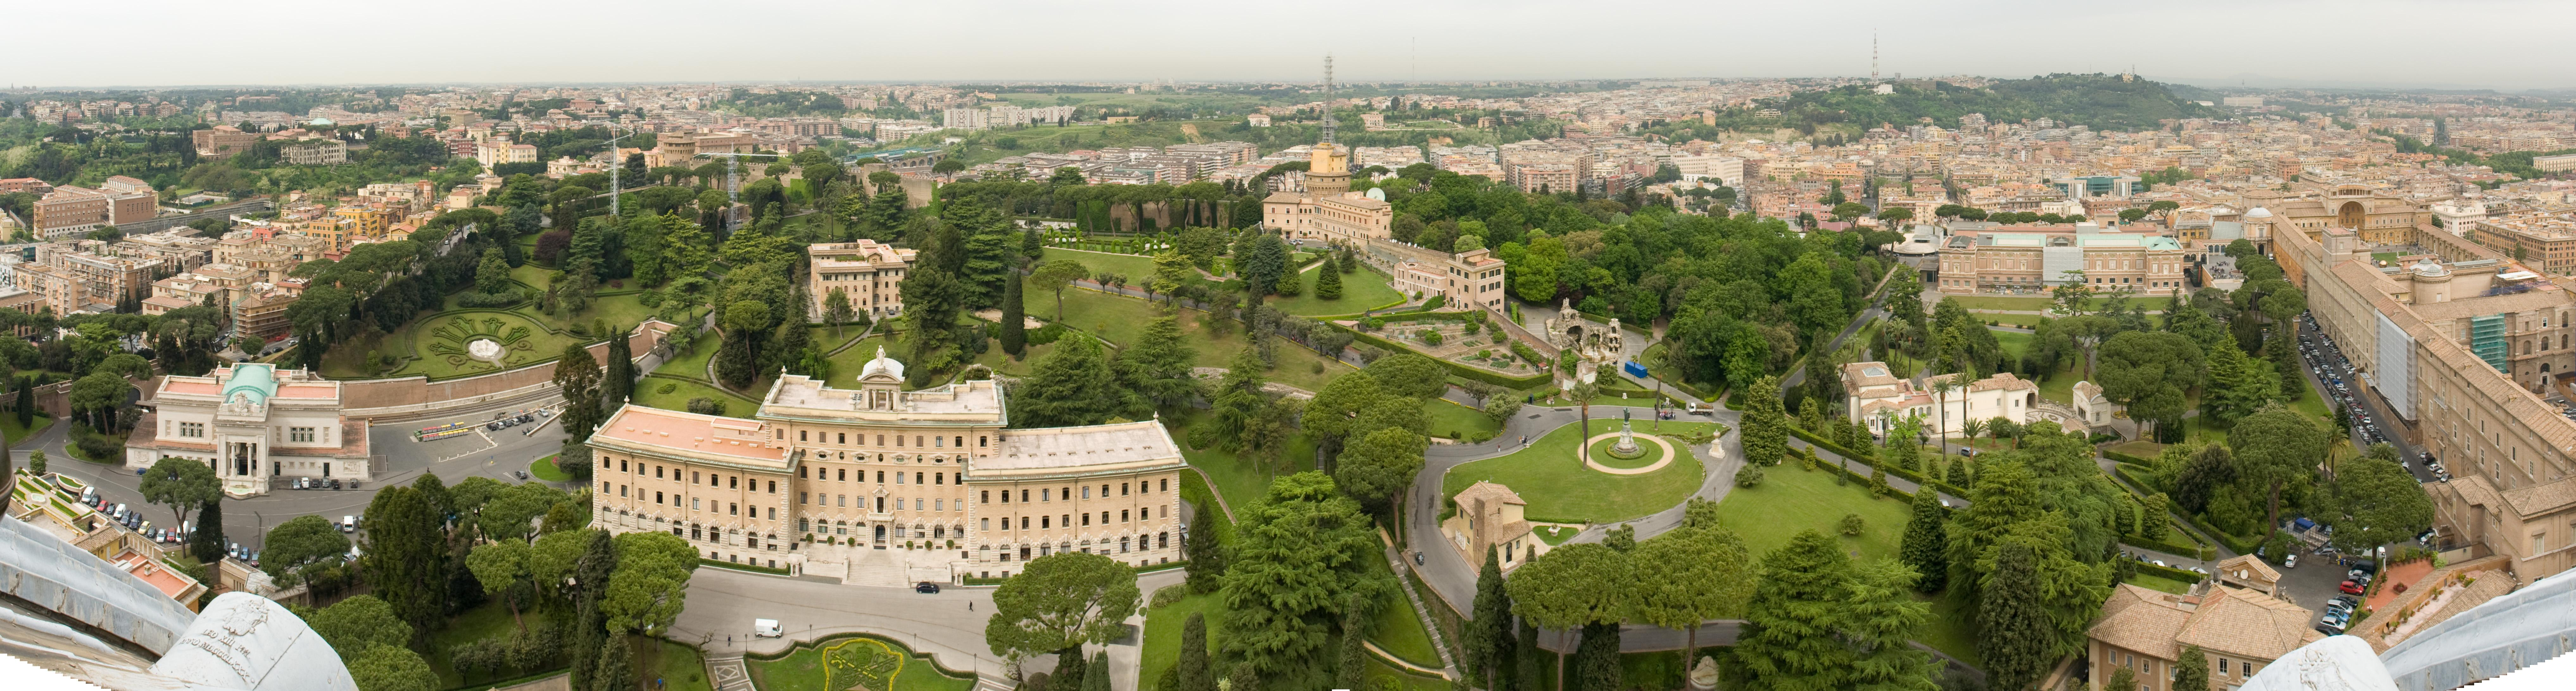 Panorama of the gardens from atop St. Peter's Basilica in the Vatican City. Photo taken by <a href=